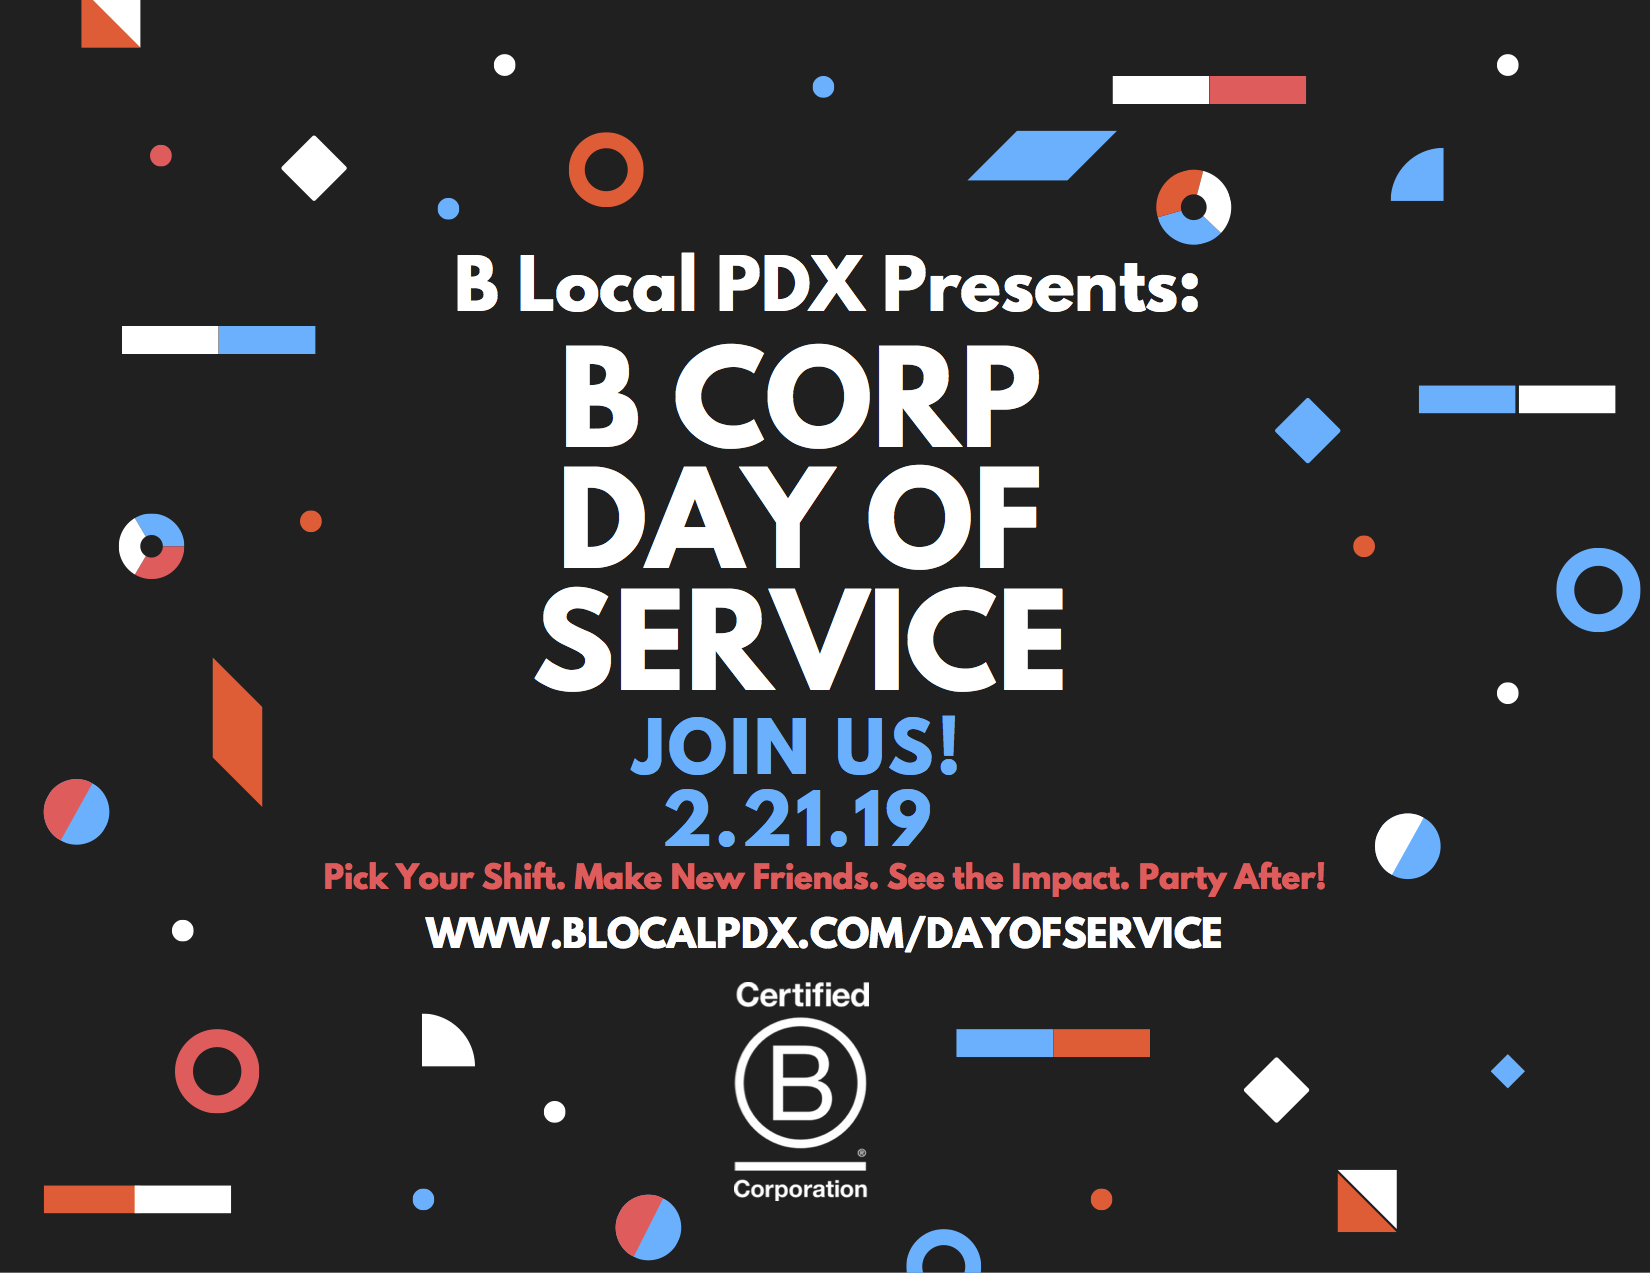 BLocalPDX_BCorp_Day_of_Service.png